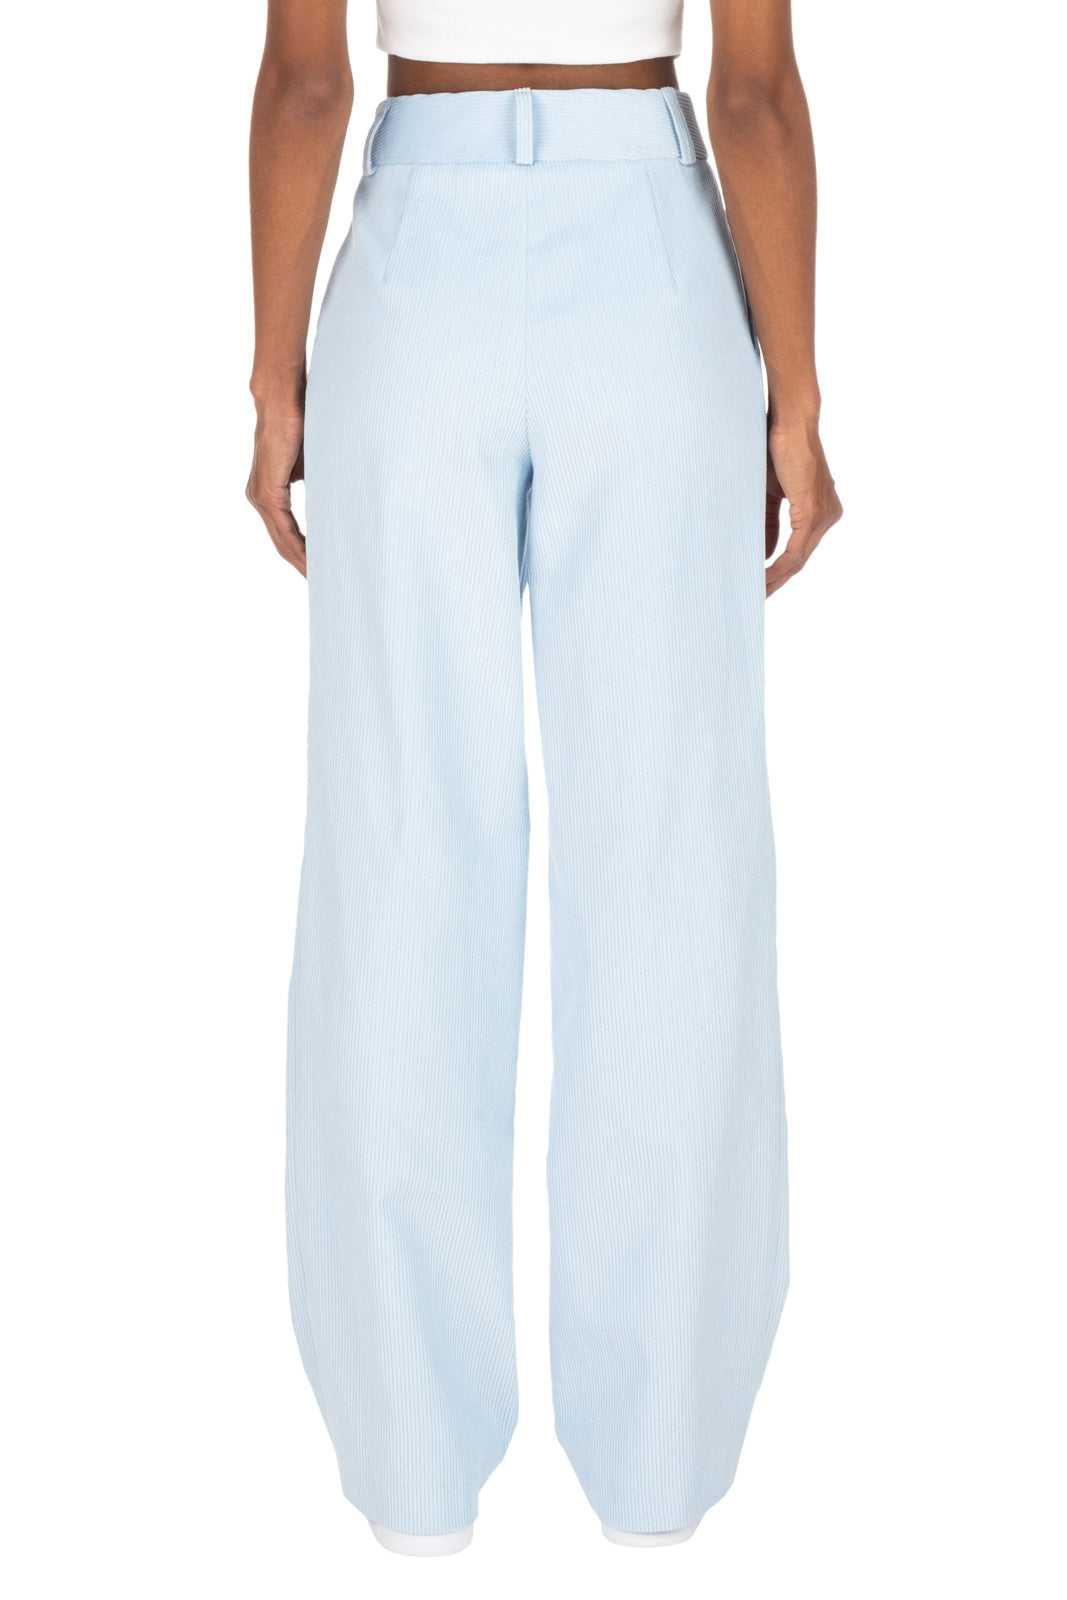 CORDUROY TROUSERS - Baby Blue